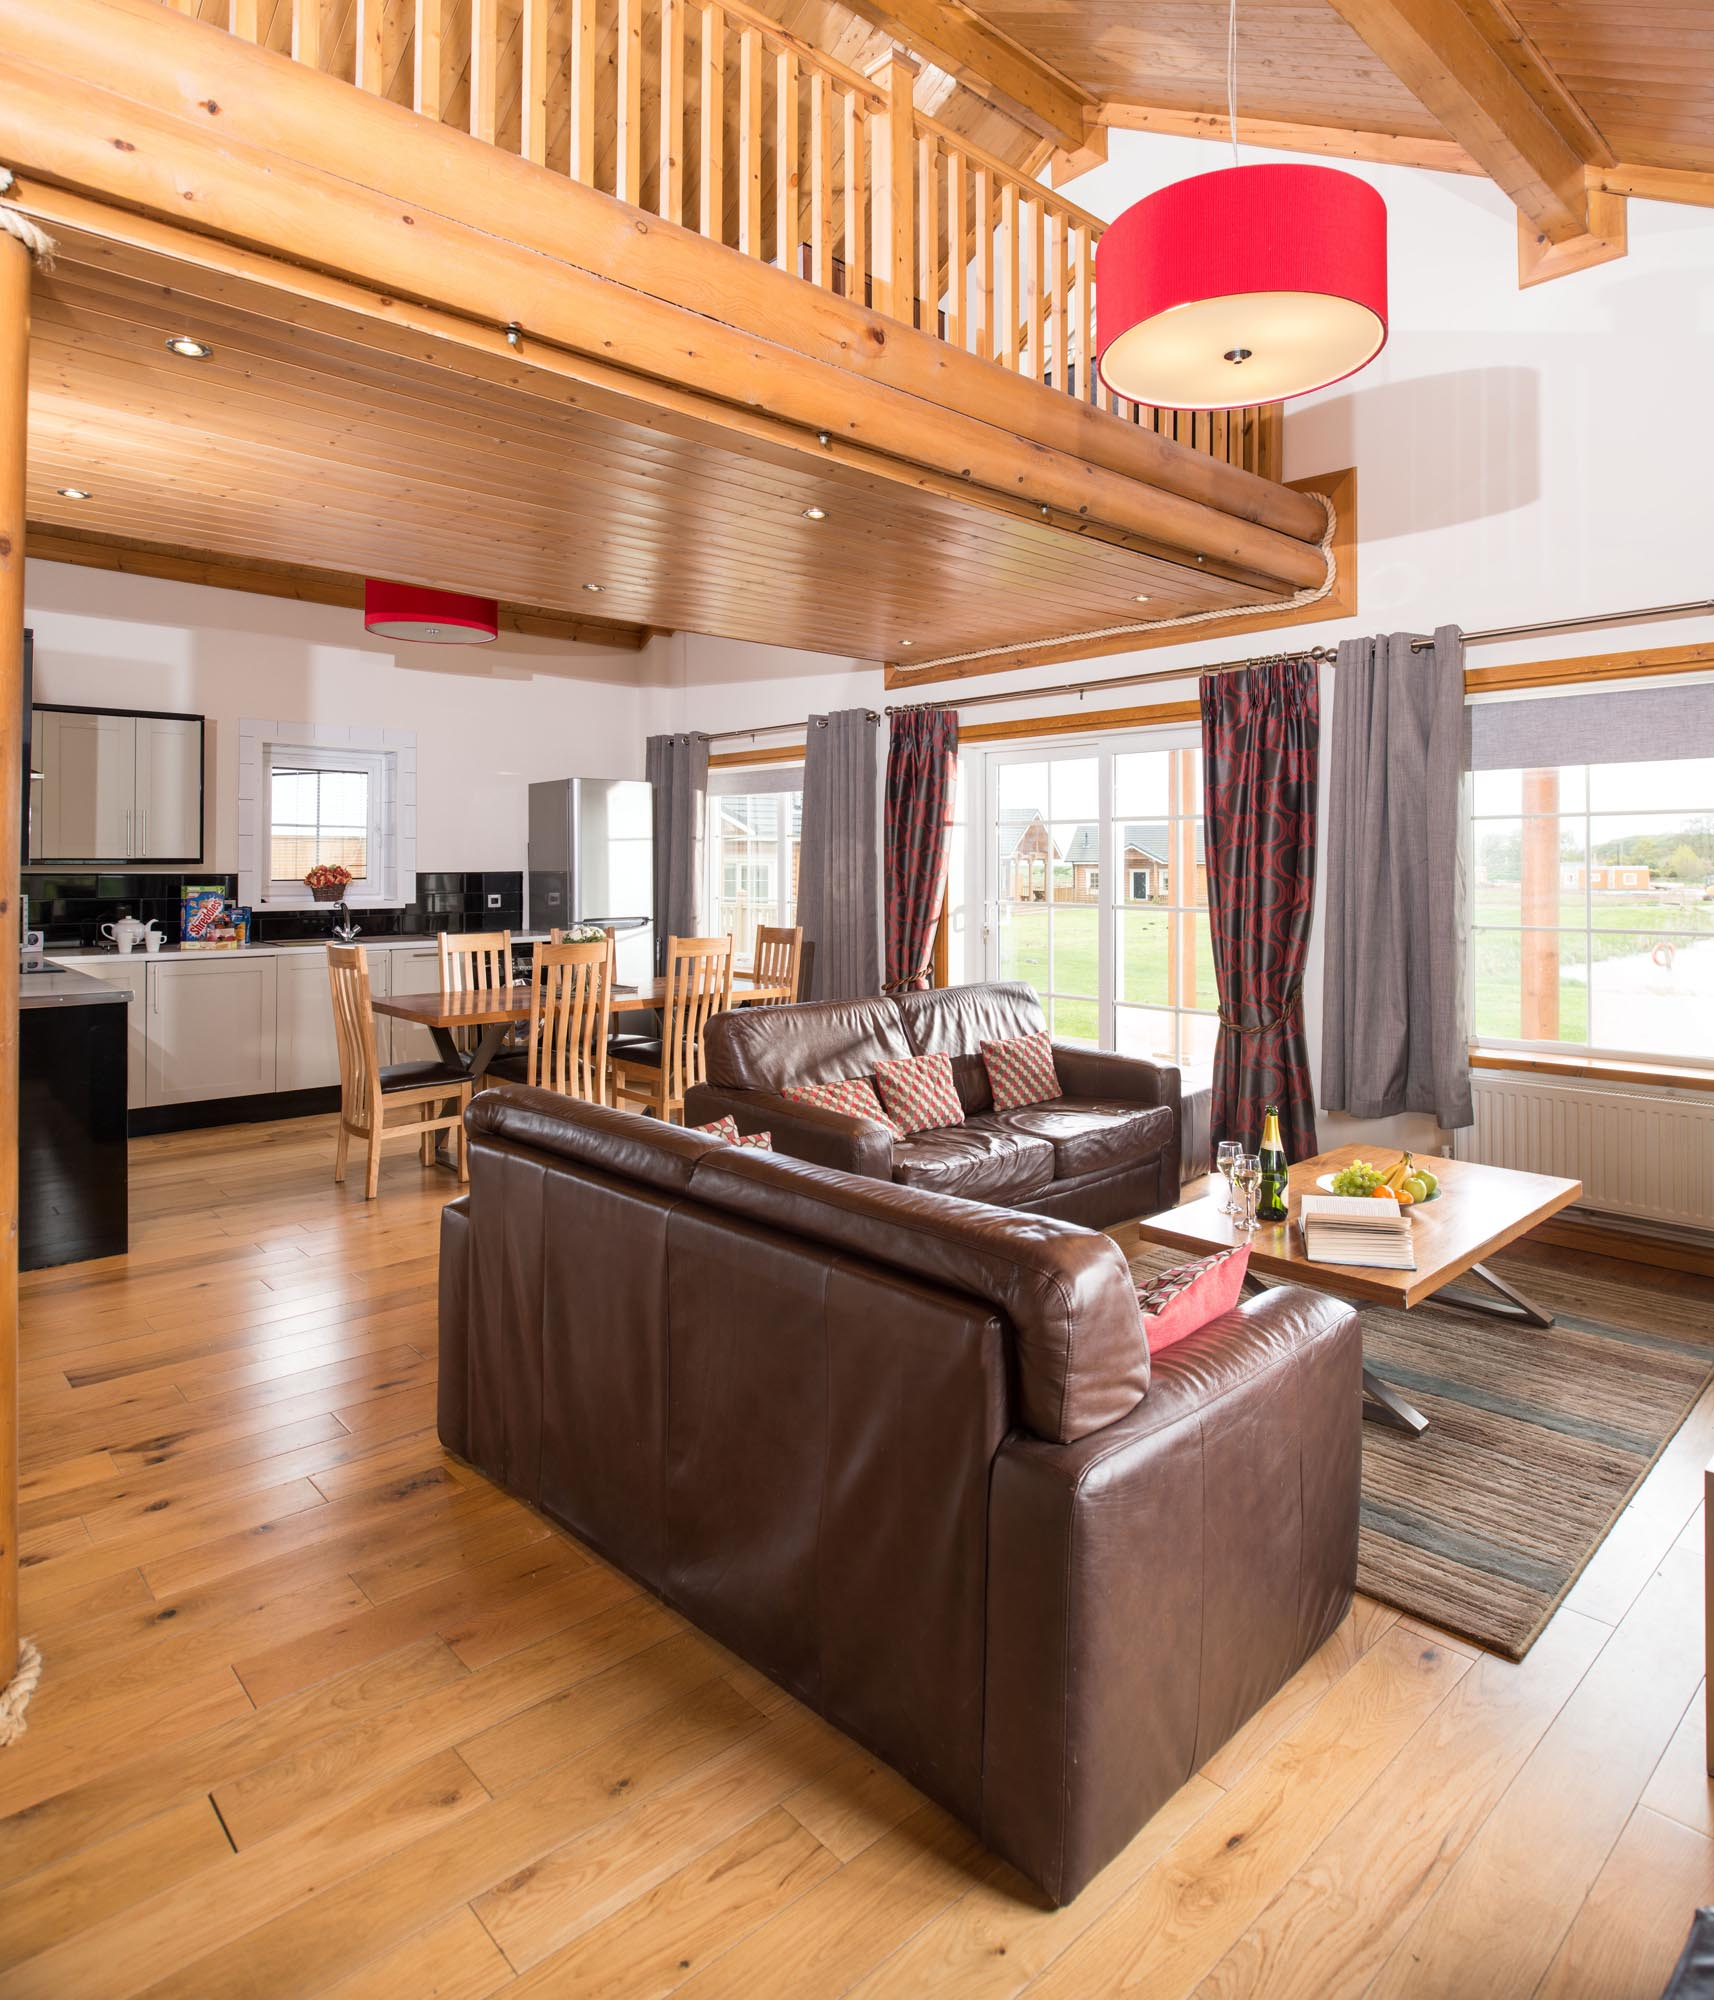 log cabin east yorkshire, east coast lodges, lodge park east yorkshire